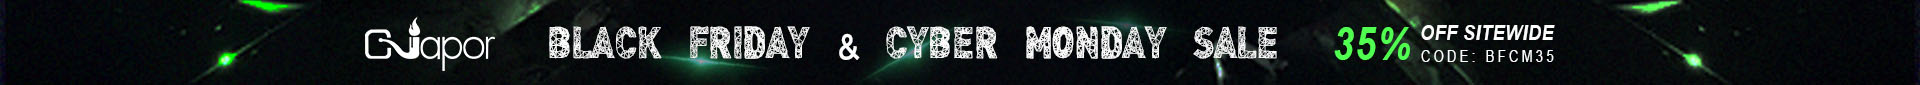 Black Friday Cyber Monday Sale Banner 2